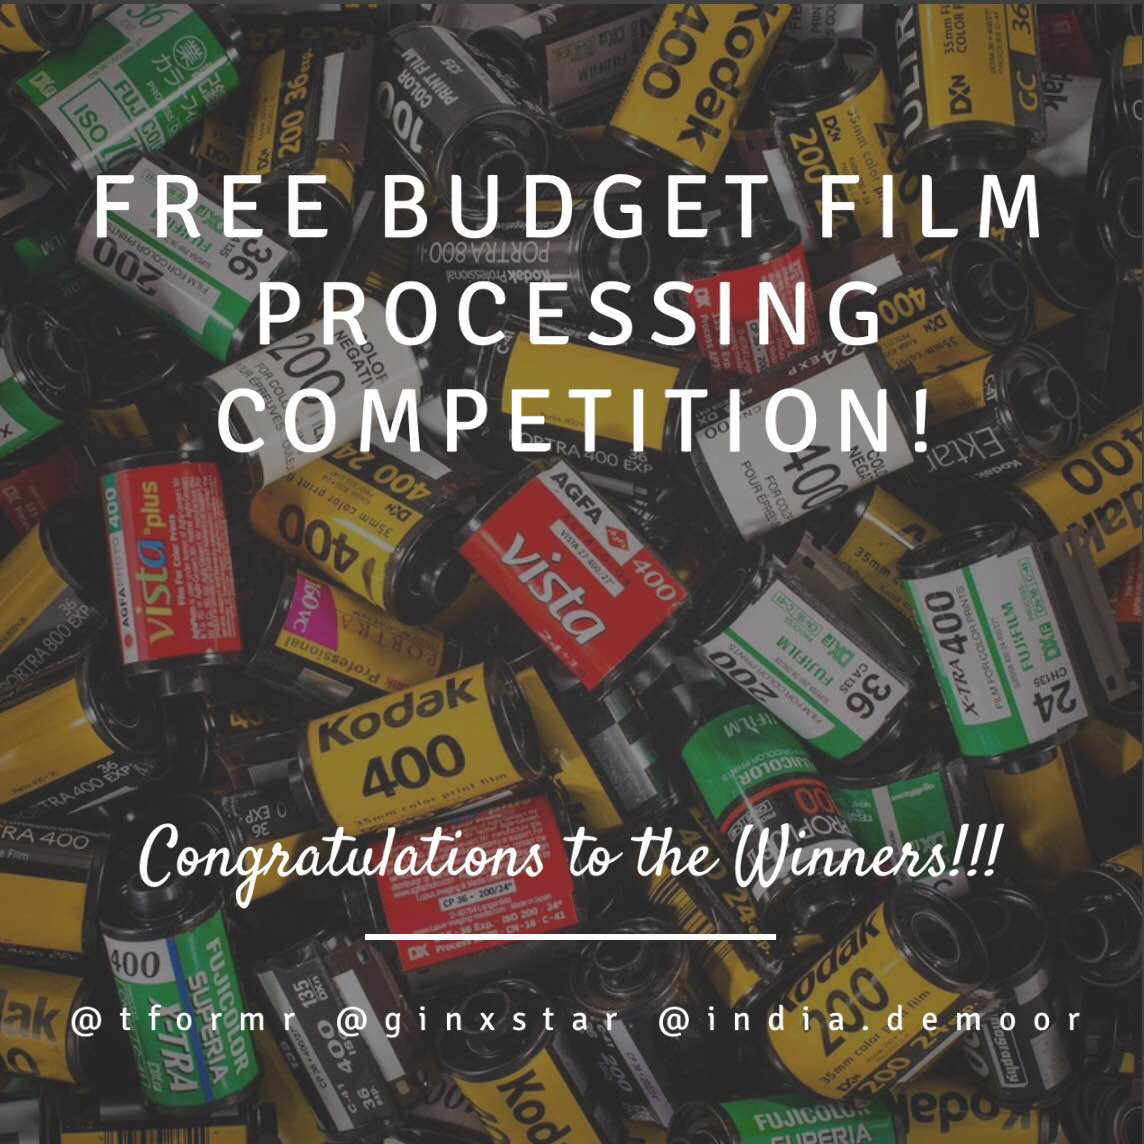 Winners of the Instagram Win Free Budget Film Processing Competition Announced